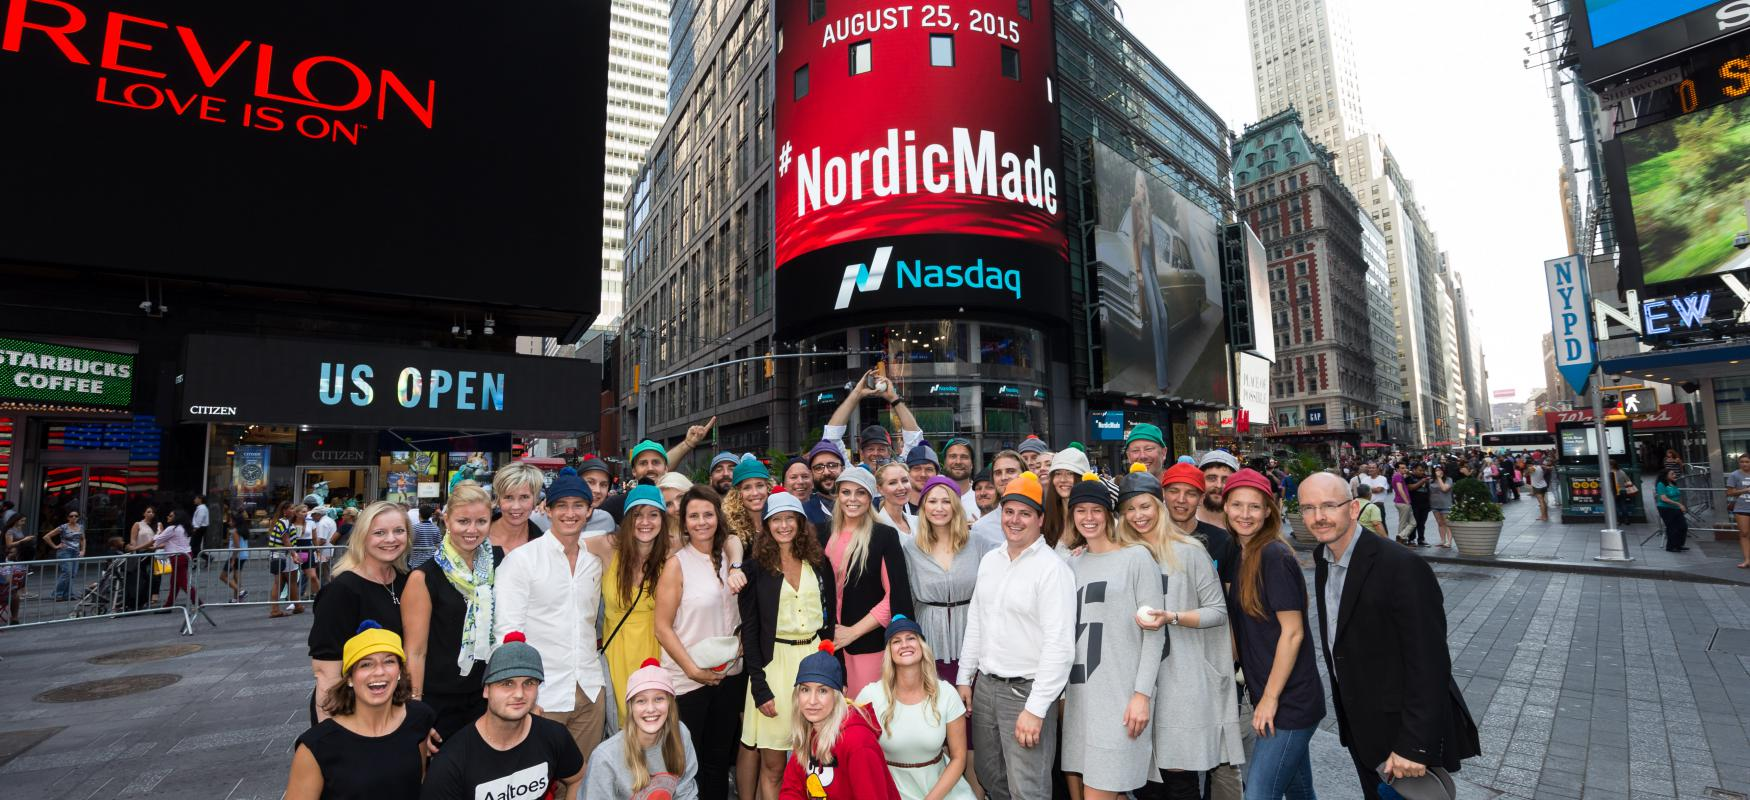 The #NordicMade team in New York, Times Square.